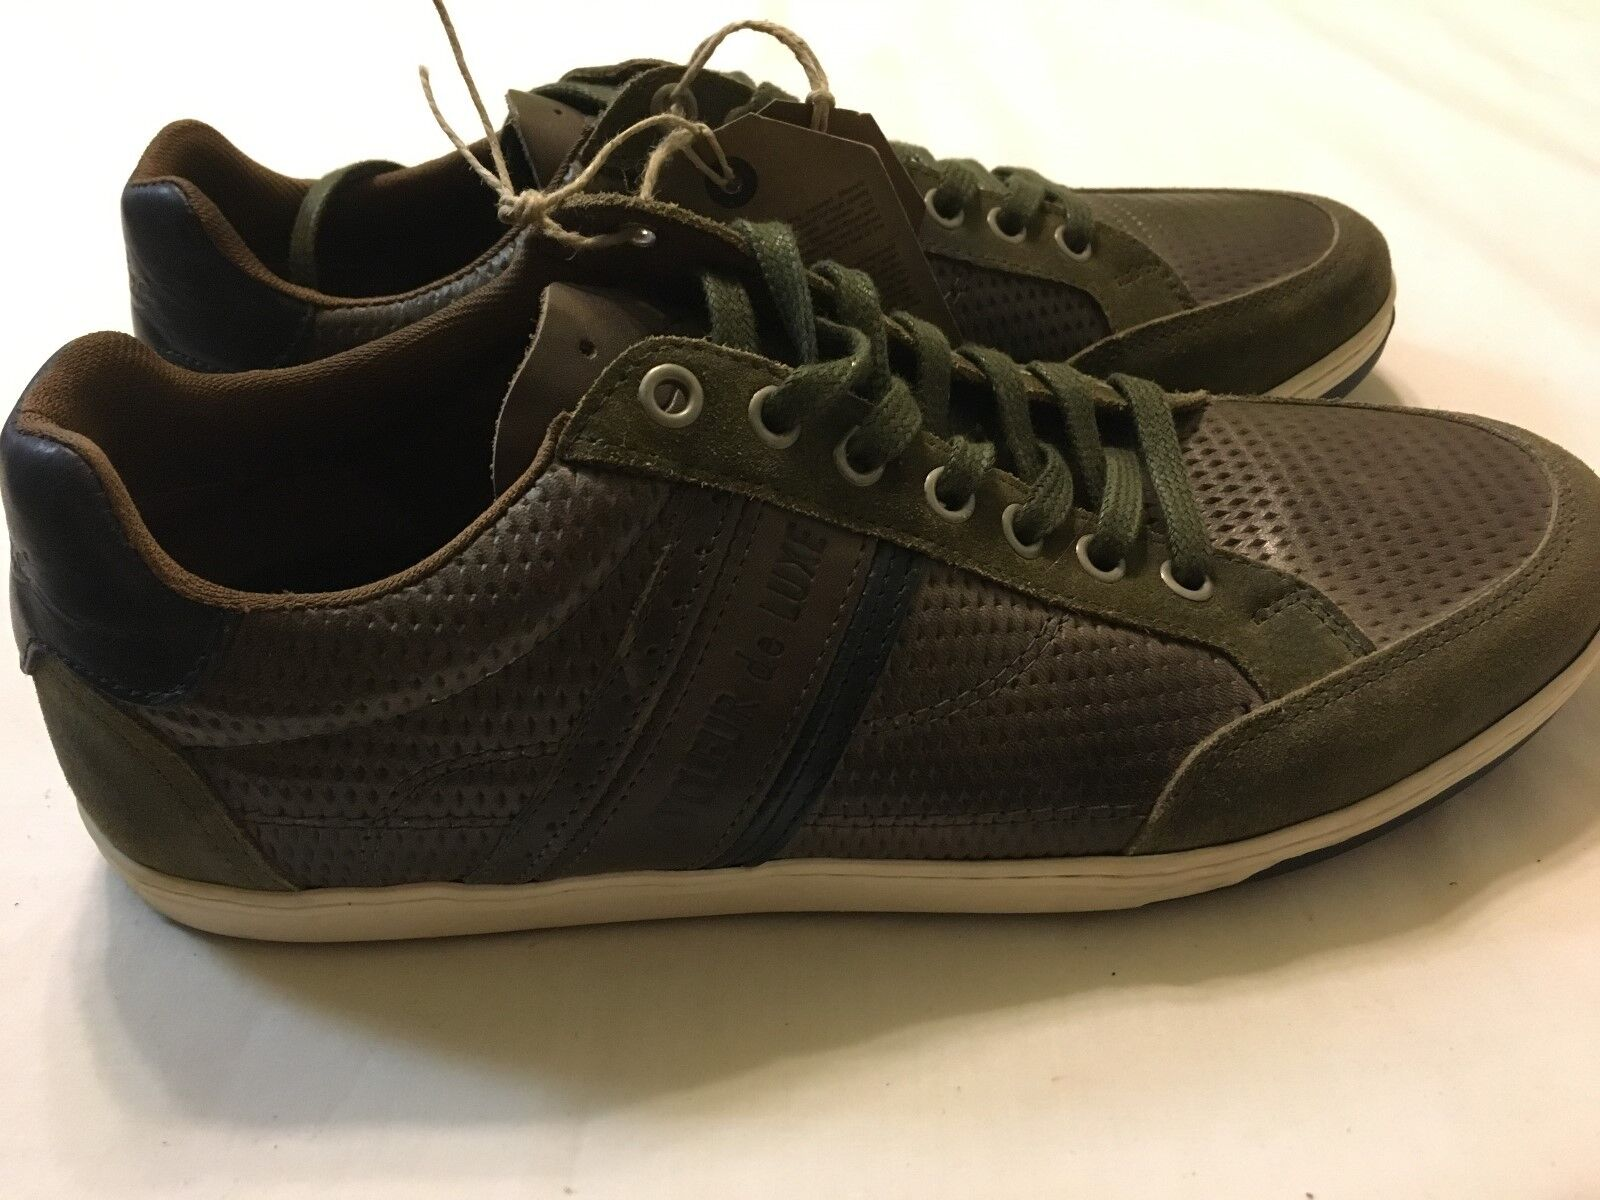 Cycleur De Luxe Mens shoes Bicycling Cycling Crash Size 10  NEW